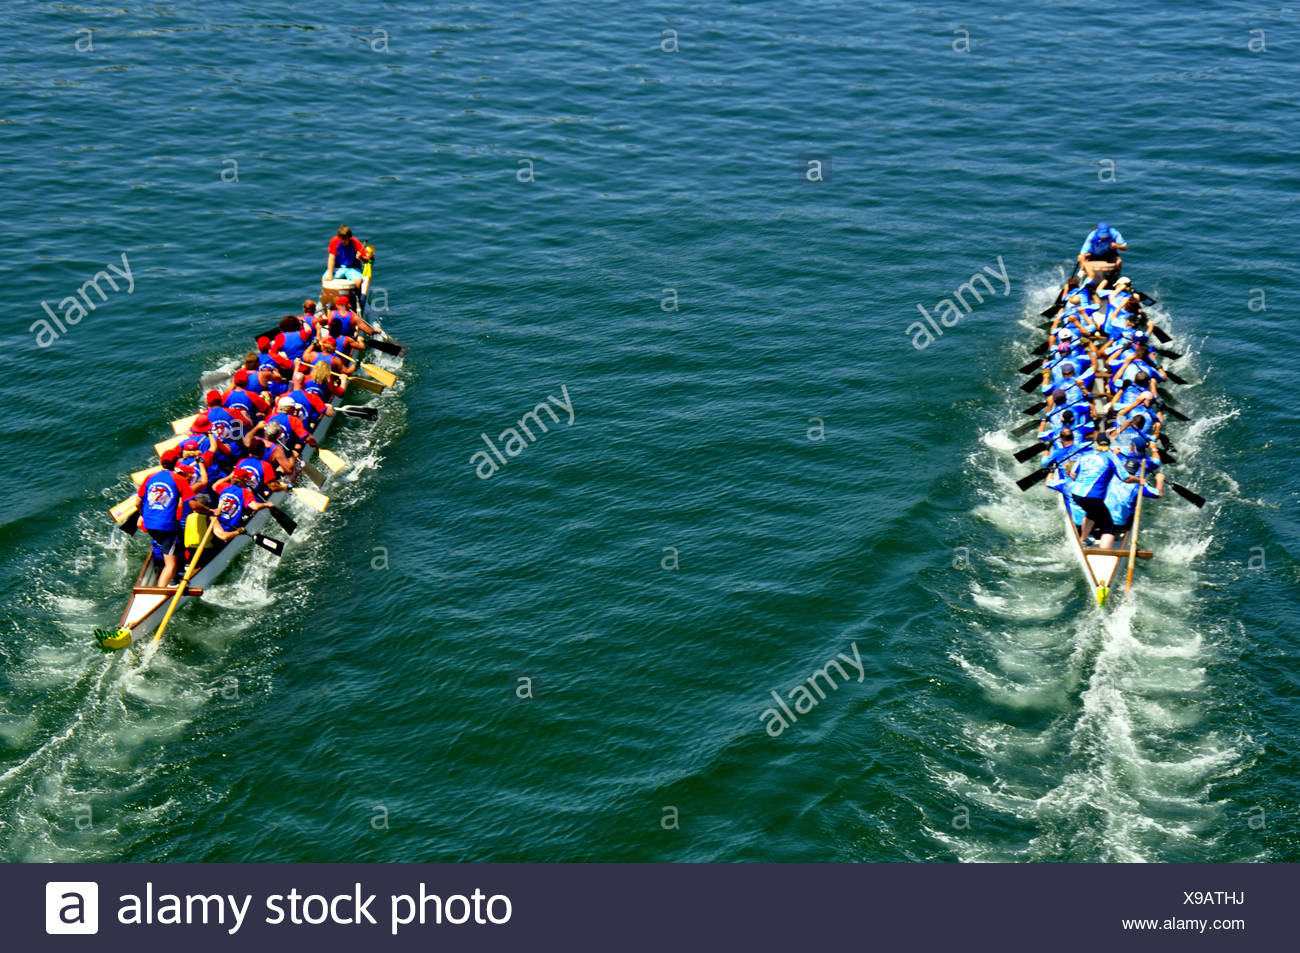 Team Sport Boat China Competition Race Water Healthy Dragonboat Dragon Boat Harbor Harbour River Lake Fast Traditional Tradition - Stock Image